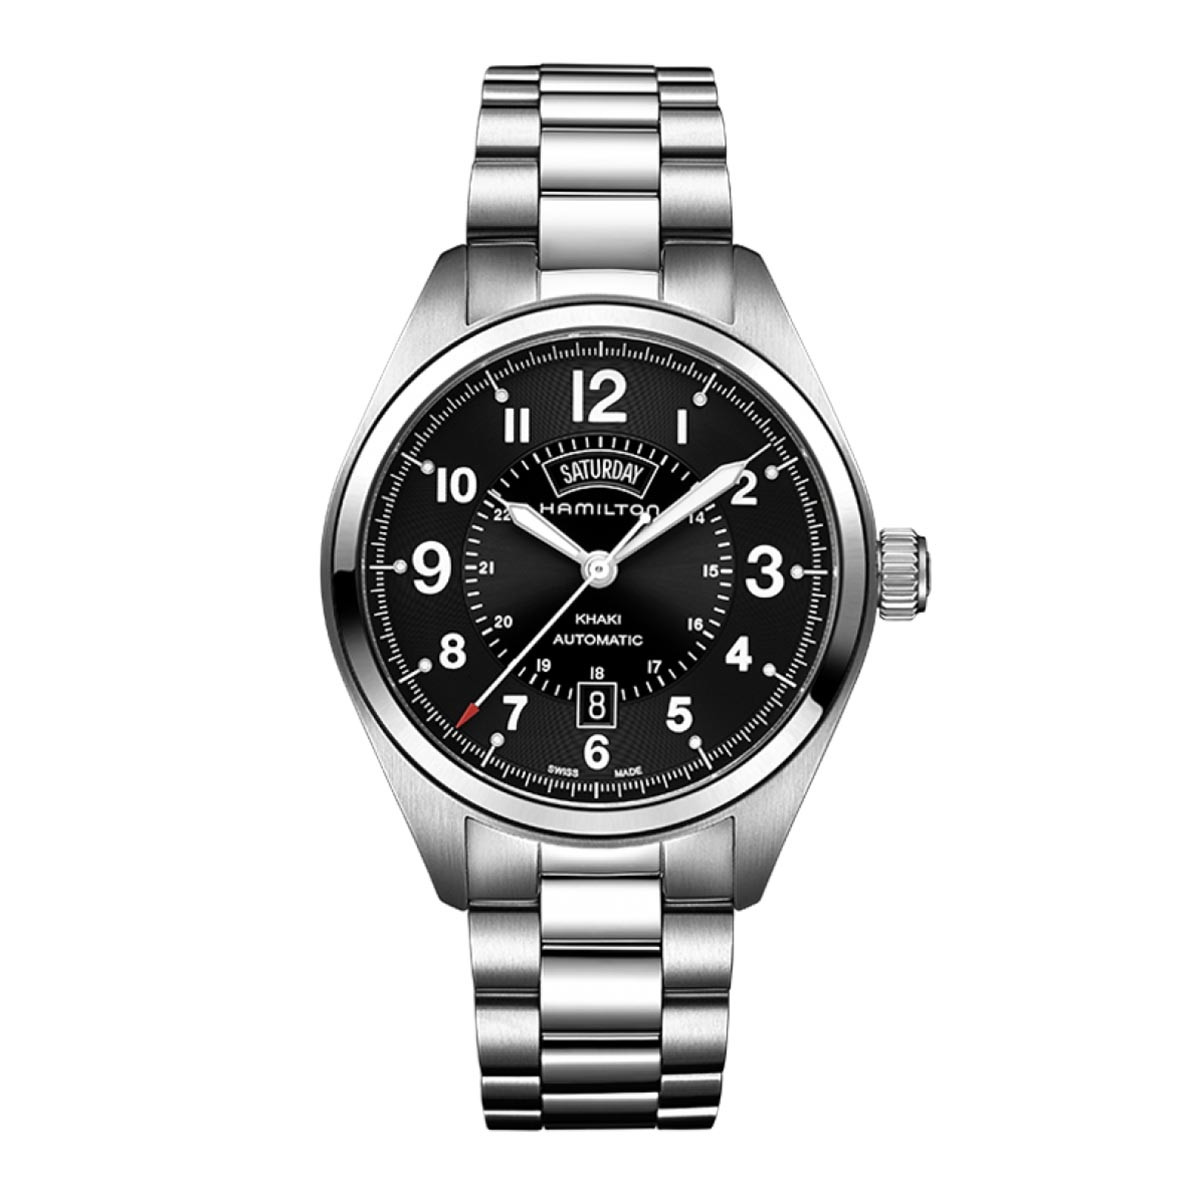 New Man's Hamilton Khaki Field Day Date